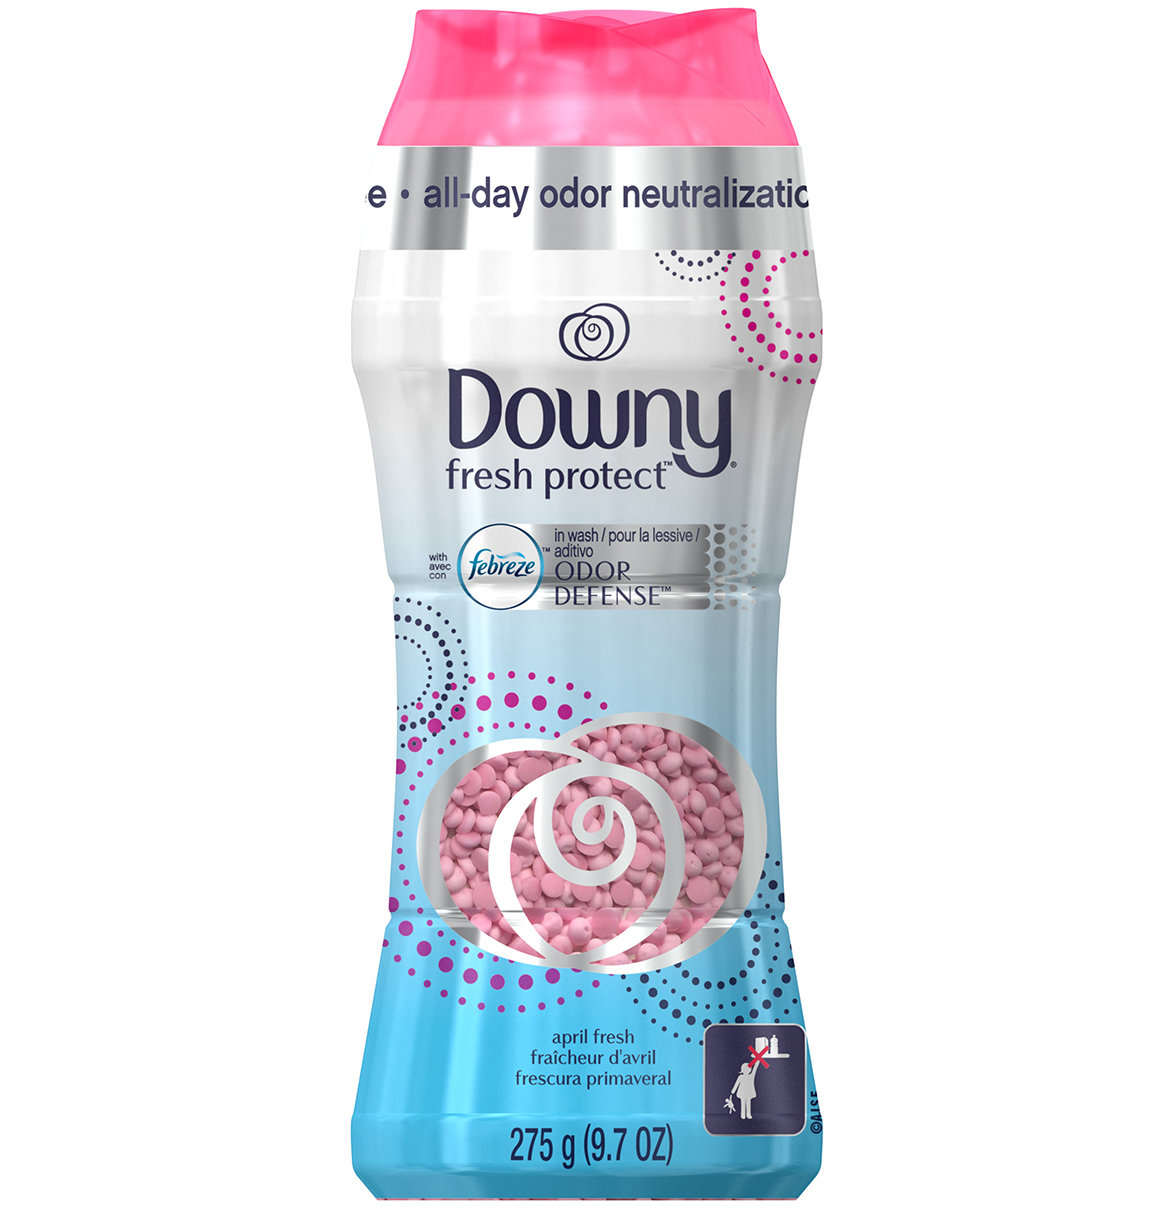 Downy Fresh Protect Odor Shield Scent Booster